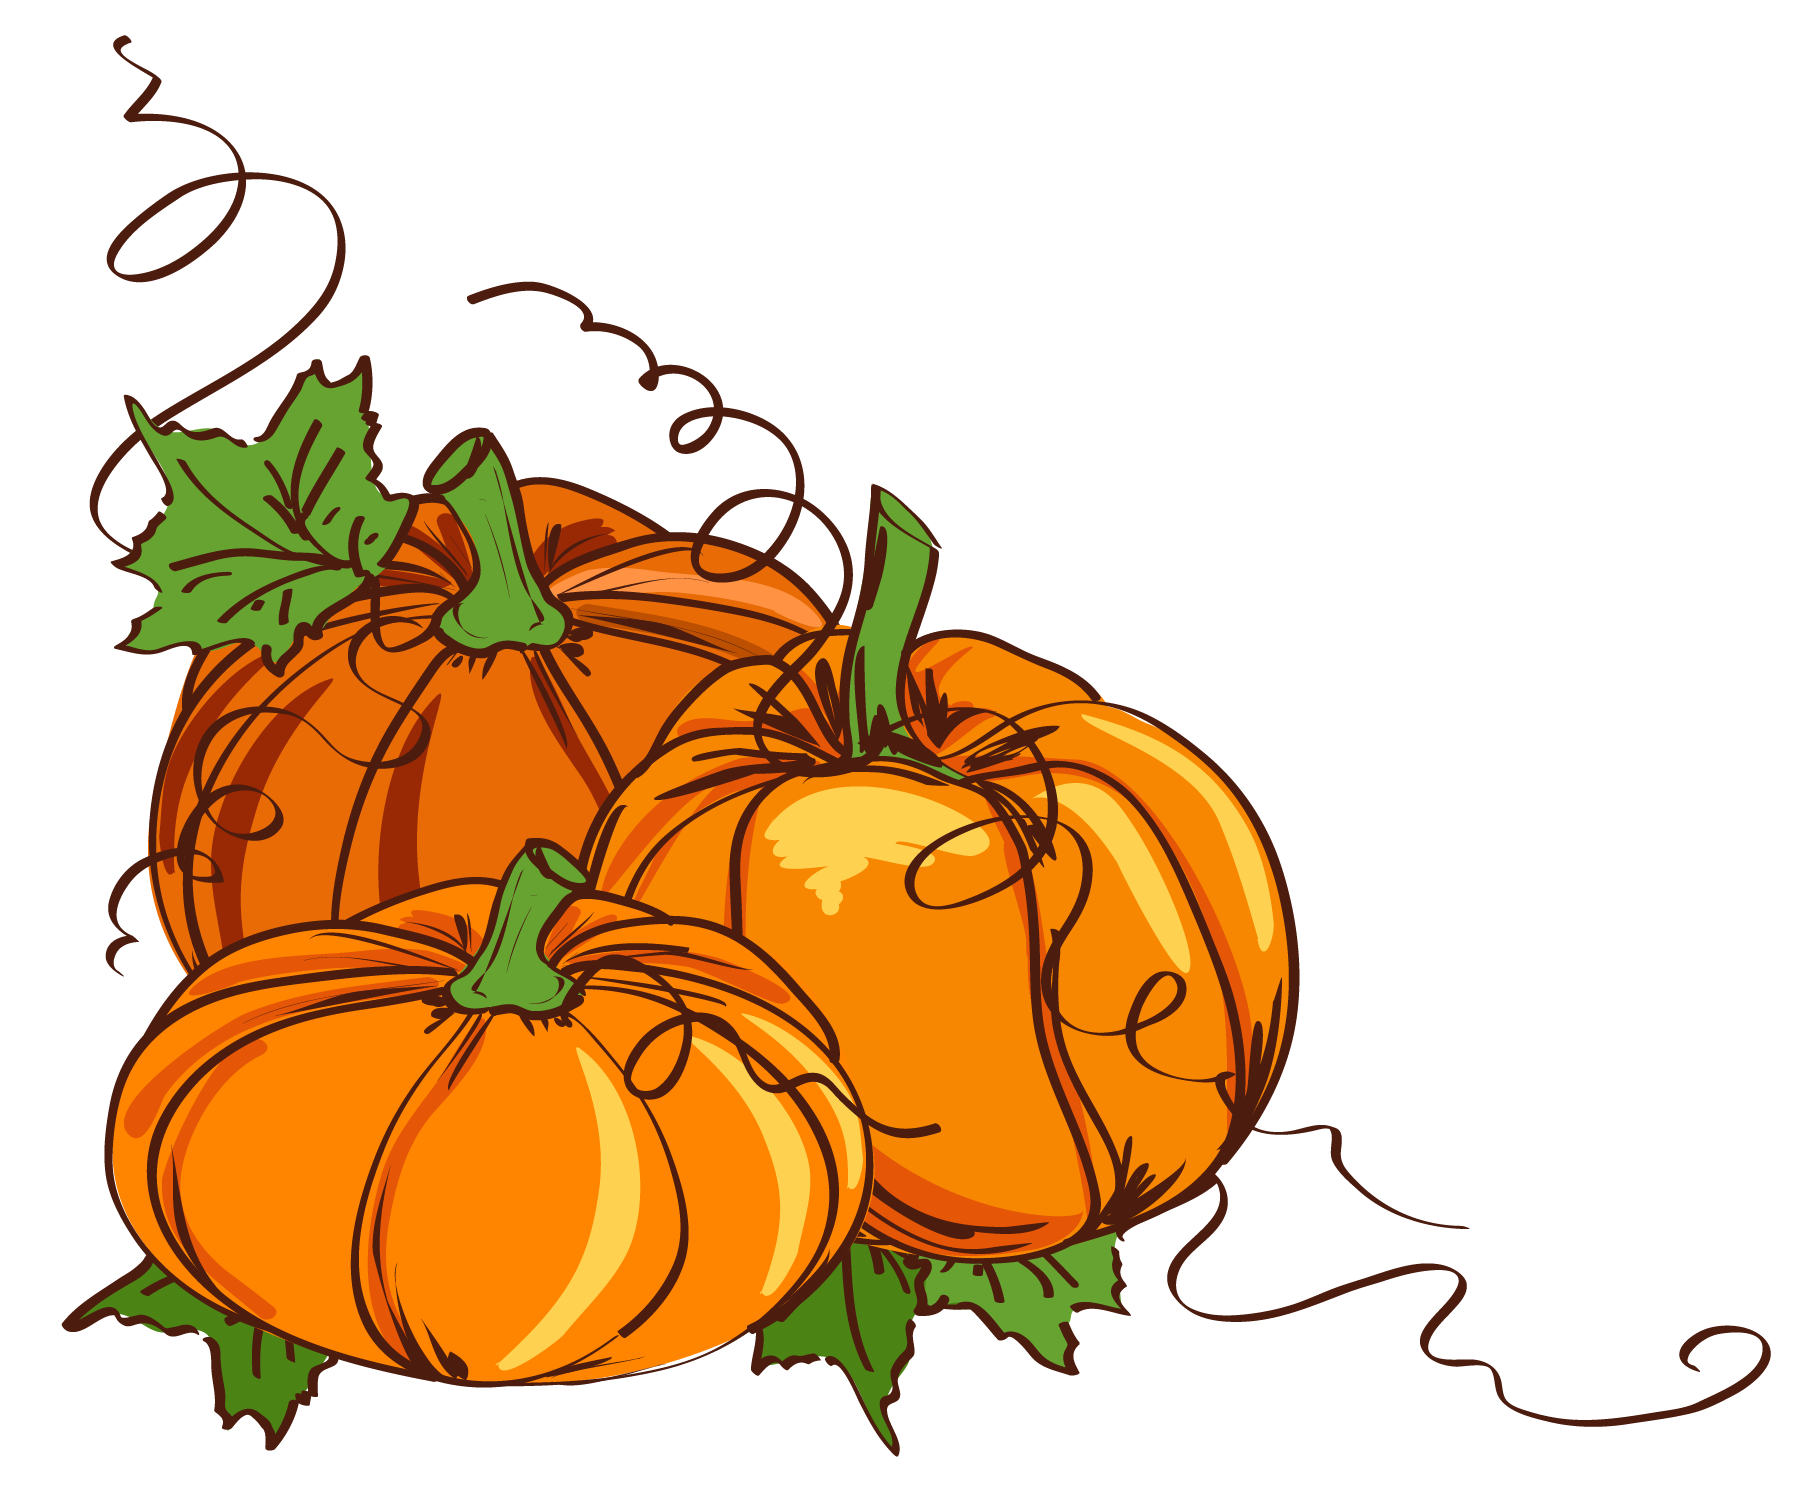 Charlie brown pumpkin clipart picture freeuse Thanksgiving Pumpkin Clipart at GetDrawings.com | Free for personal ... picture freeuse